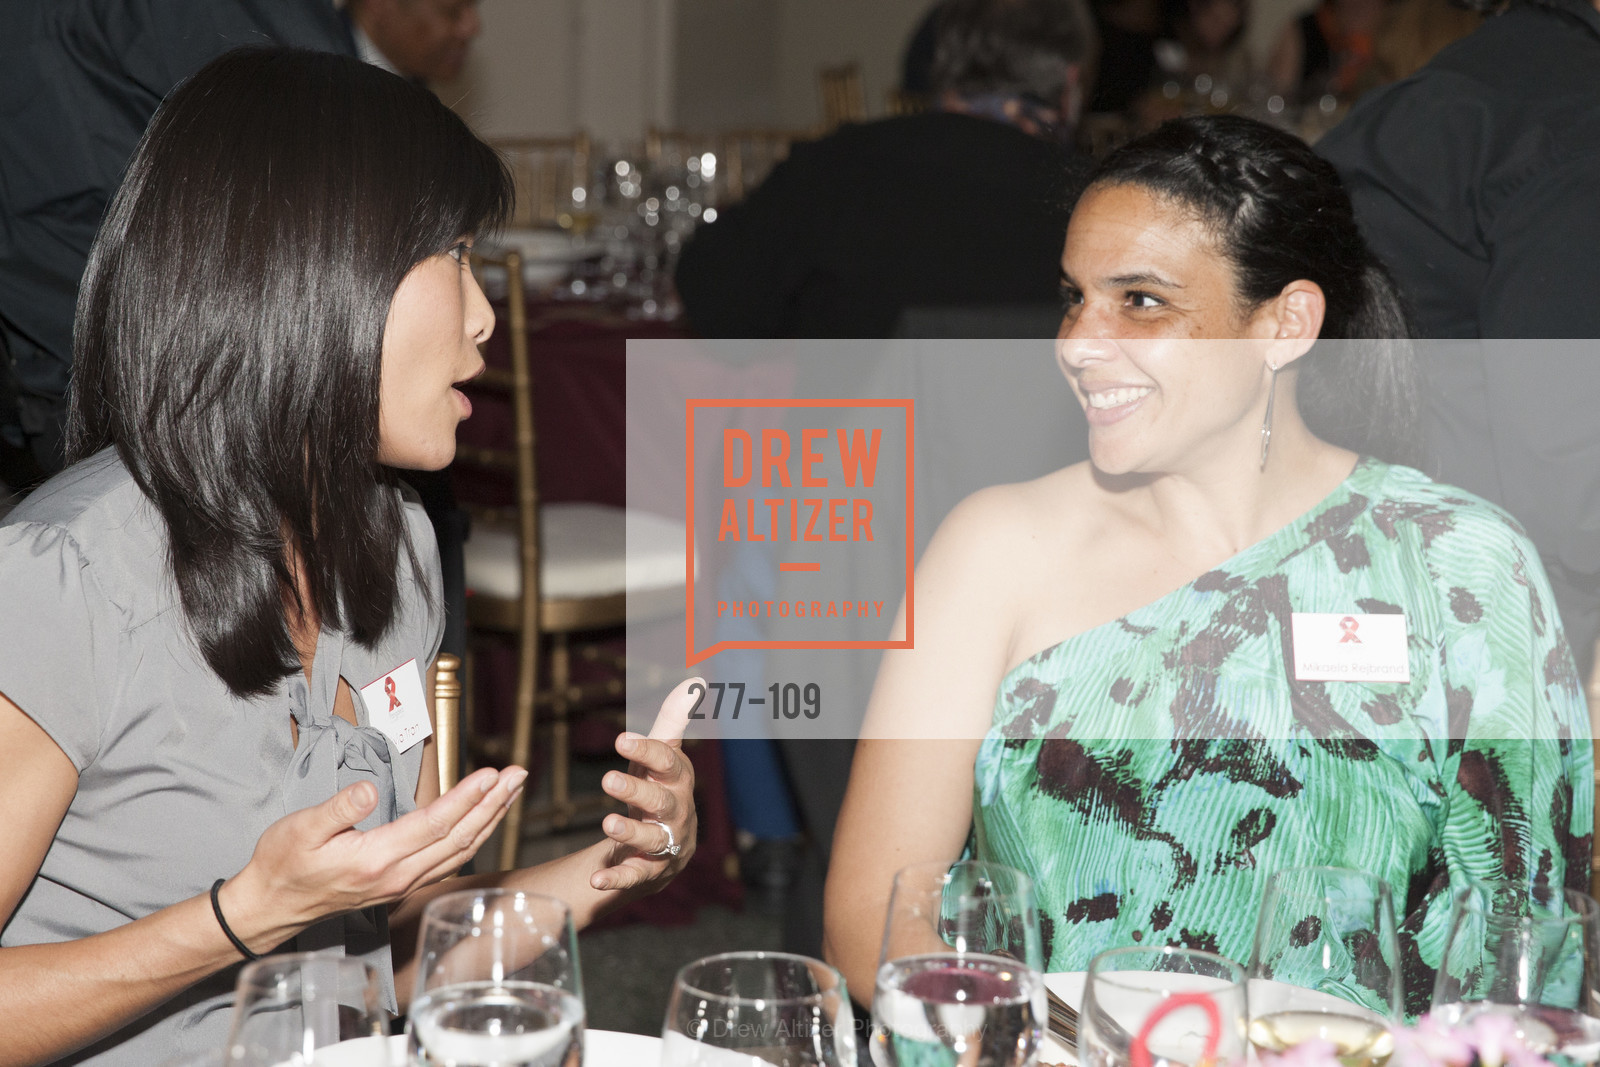 Olivia Tran, Mikaela Rejbrand, PANGAEA GLOBAL HEALTH Leadership Dinner at Rotunda in Oakland, The Rotunda. Oakland, May 11th, 2015,Drew Altizer, Drew Altizer Photography, full-service agency, private events, San Francisco photographer, photographer california